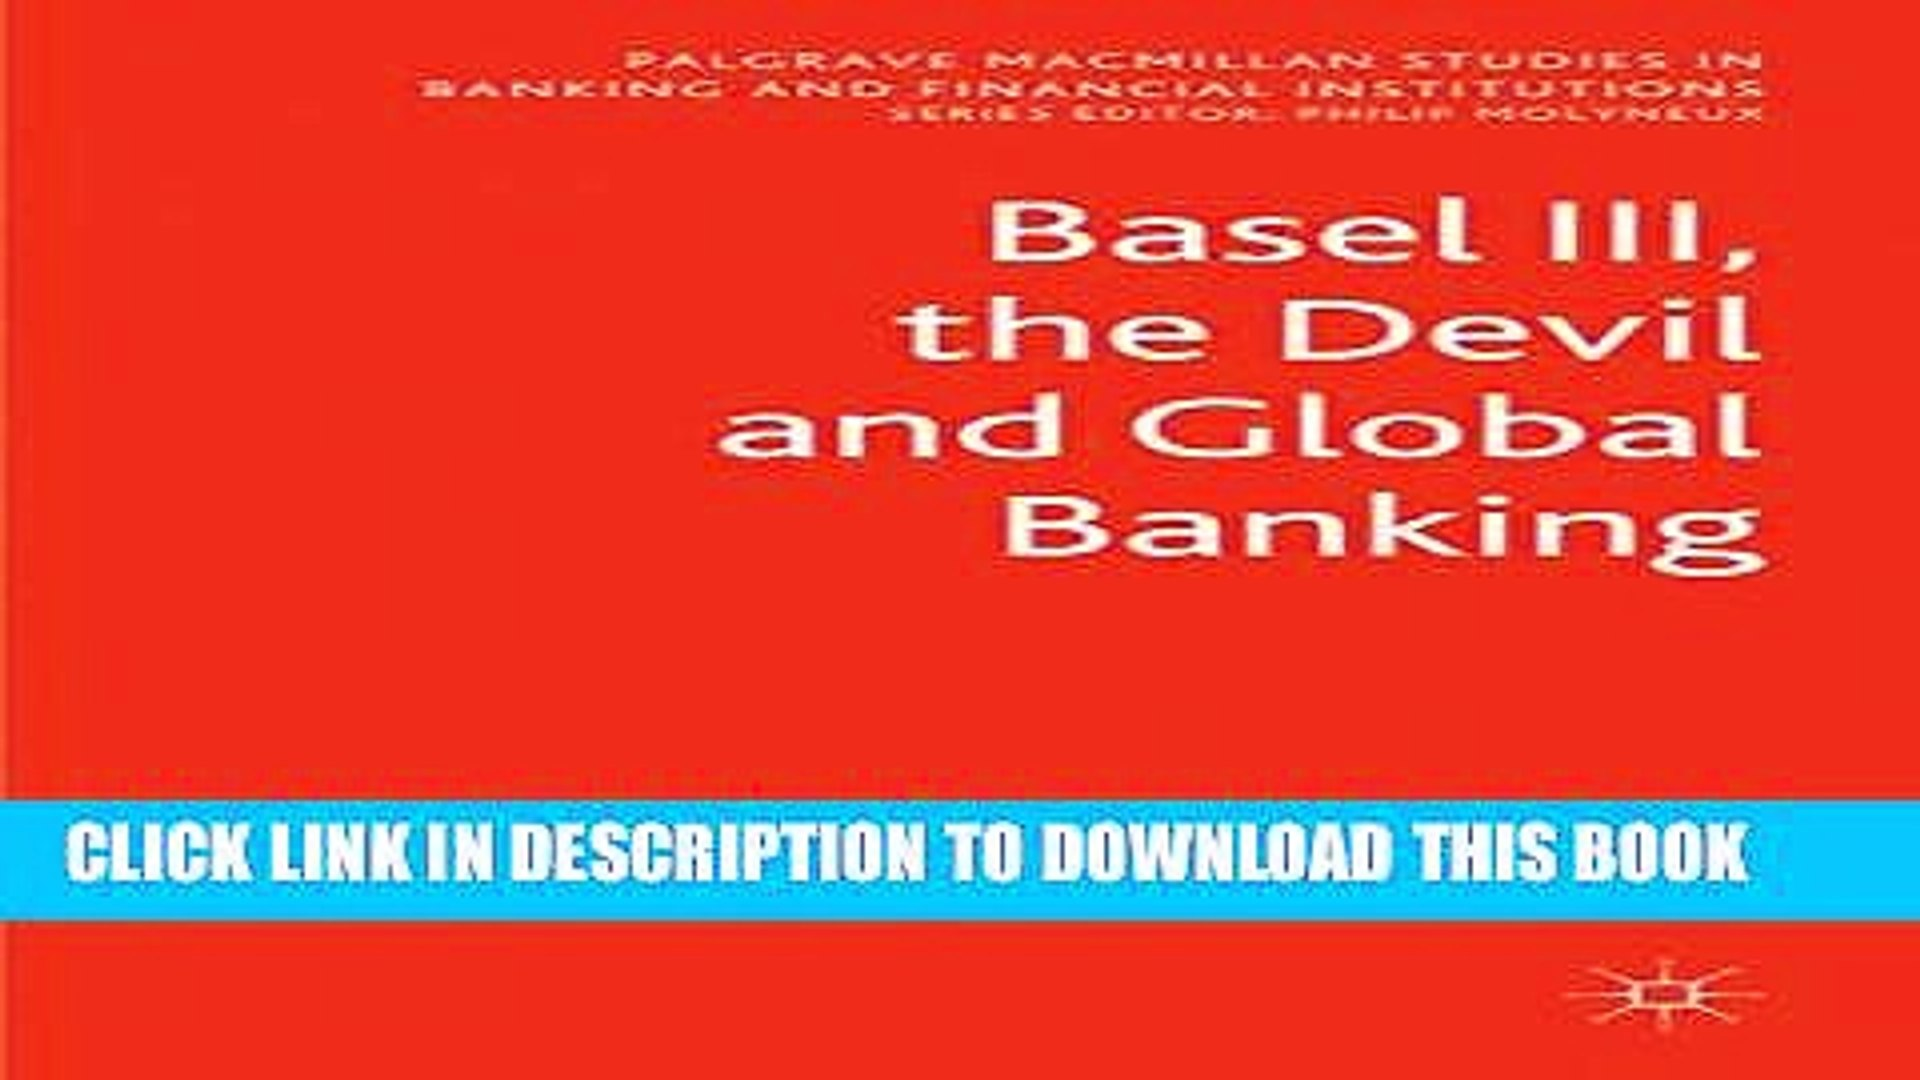 [PDF] Basel III, the Devil and Global Banking (Palgrave Macmillan Studies in Banking and Financial